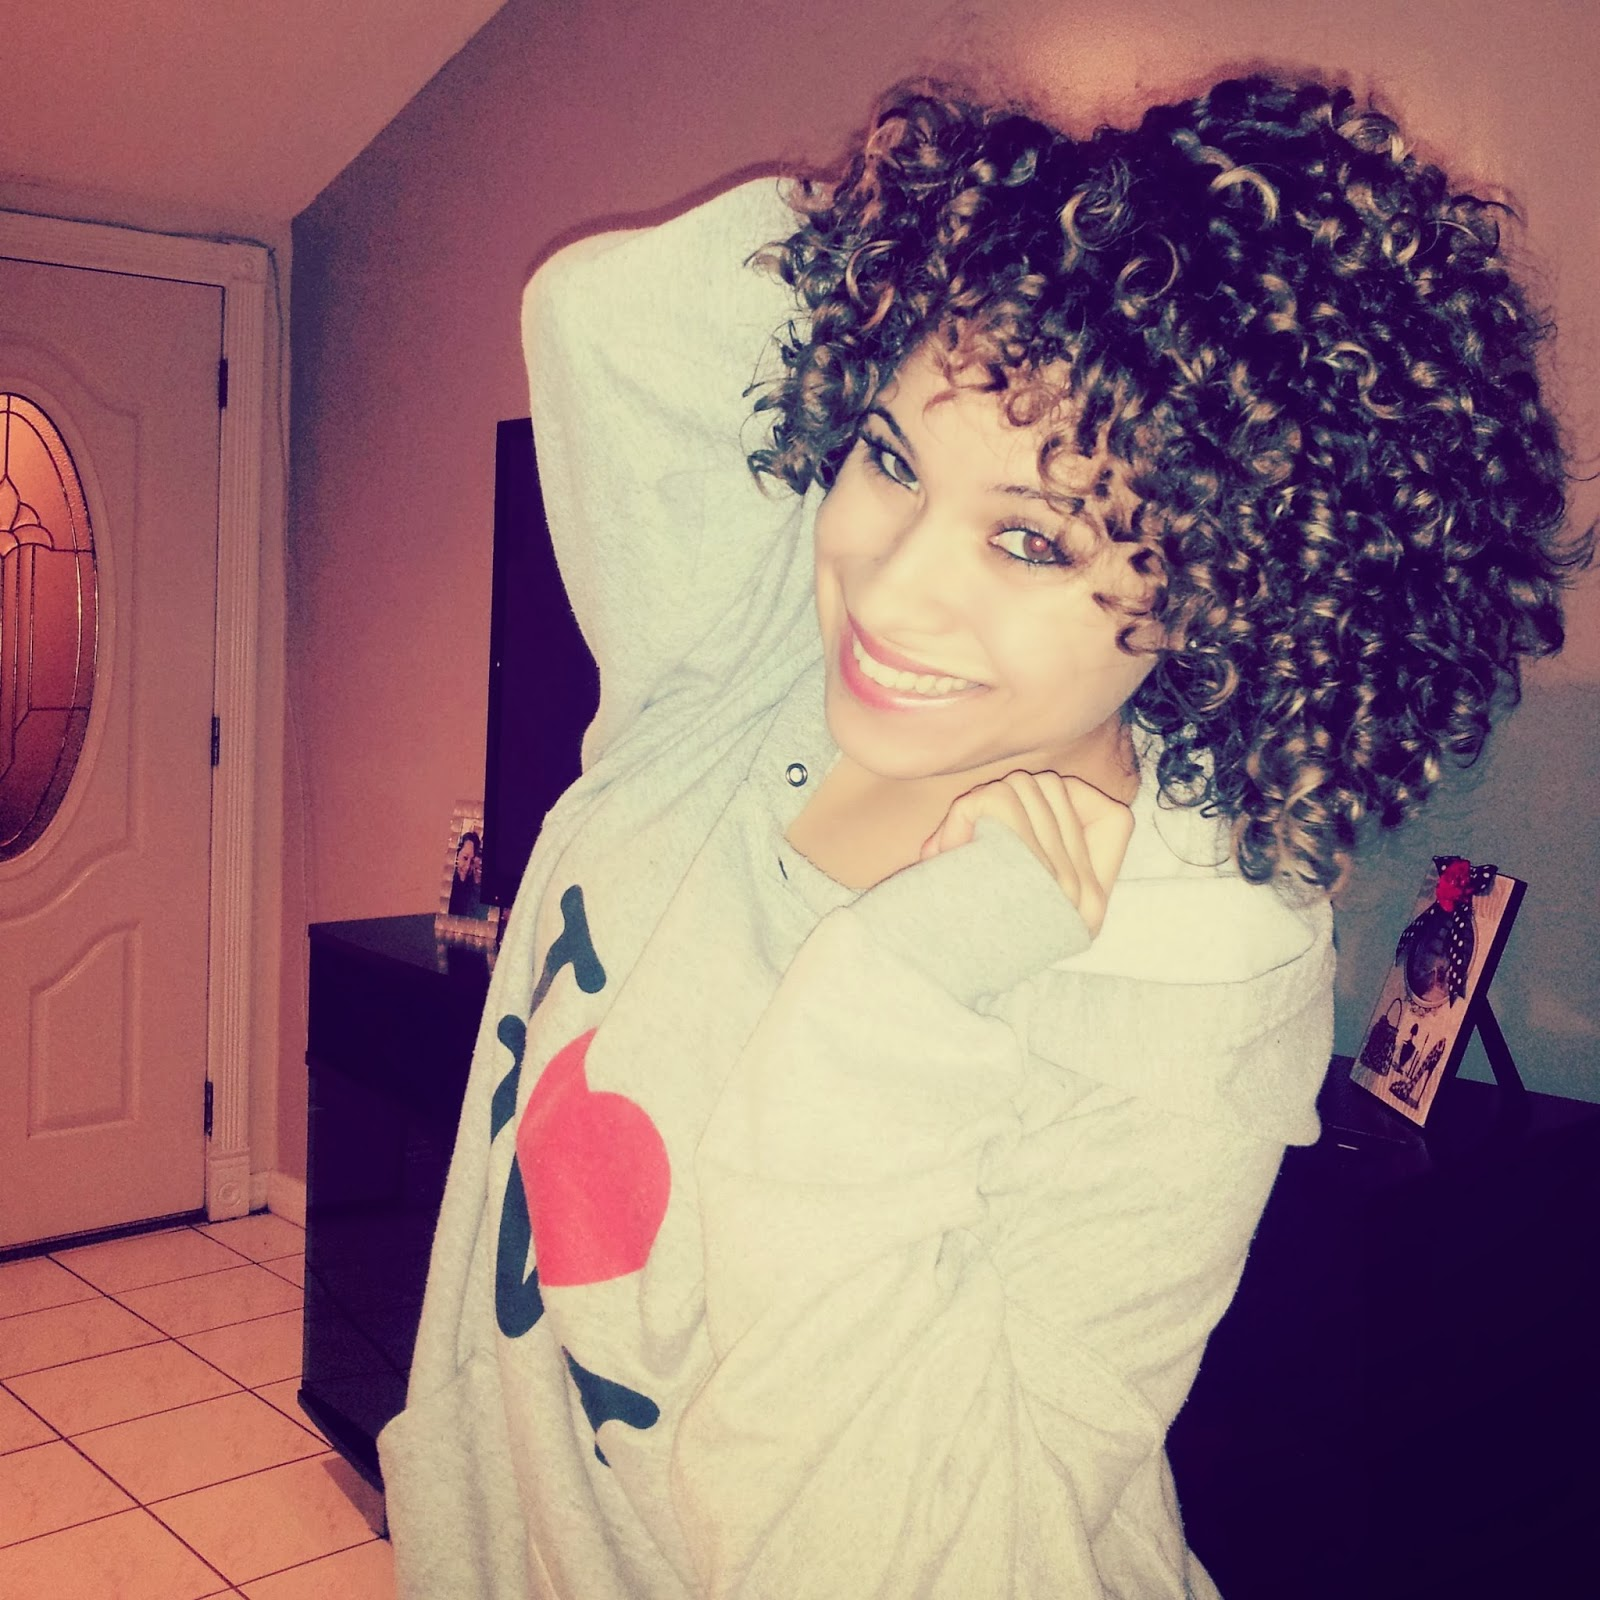 Curly Hair Style Pretty Mixed Girls With Curly Hair Instagram